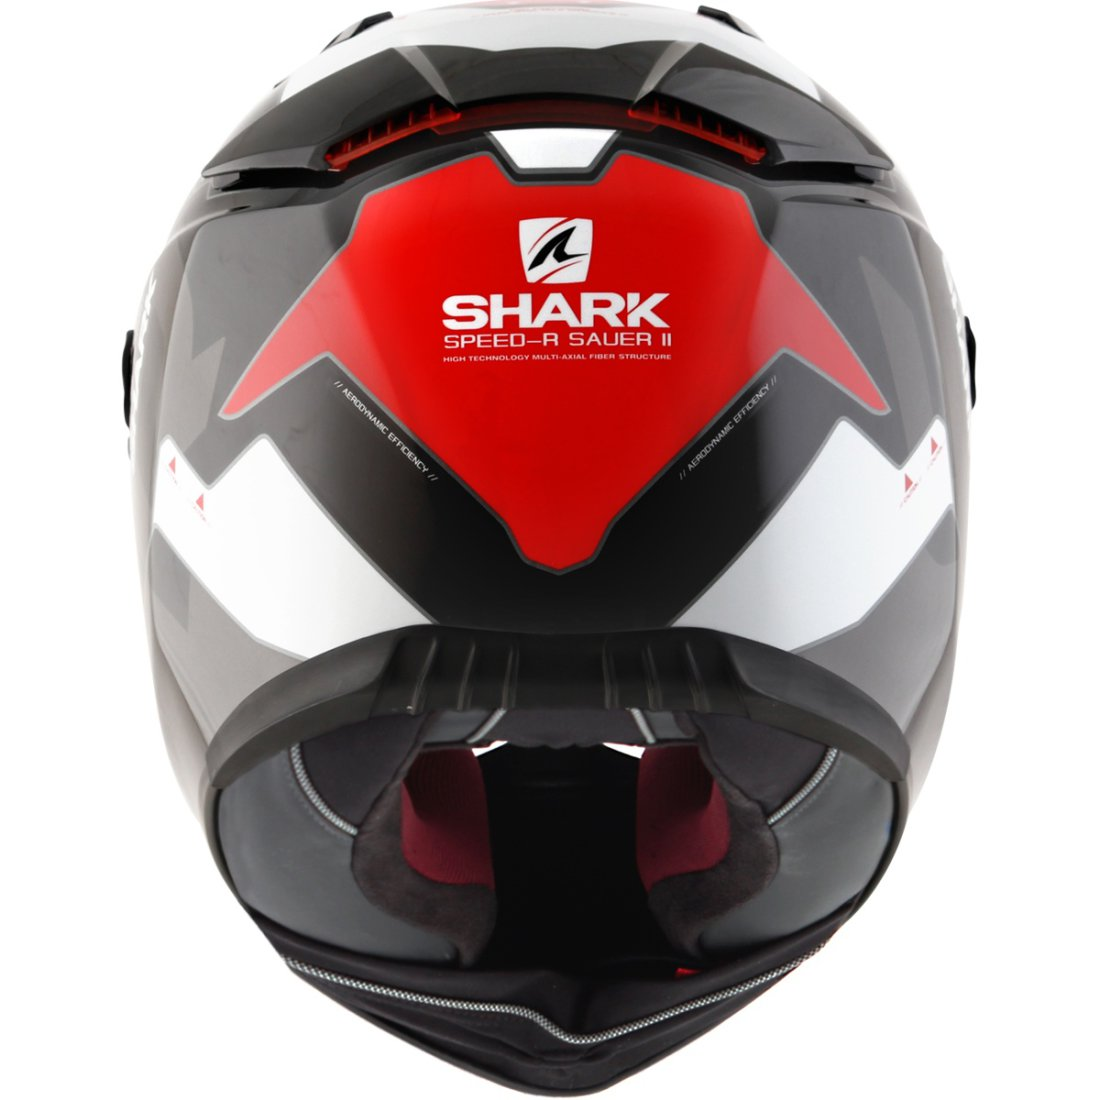 helmet shark speed r series2 sauer ii black red white. Black Bedroom Furniture Sets. Home Design Ideas